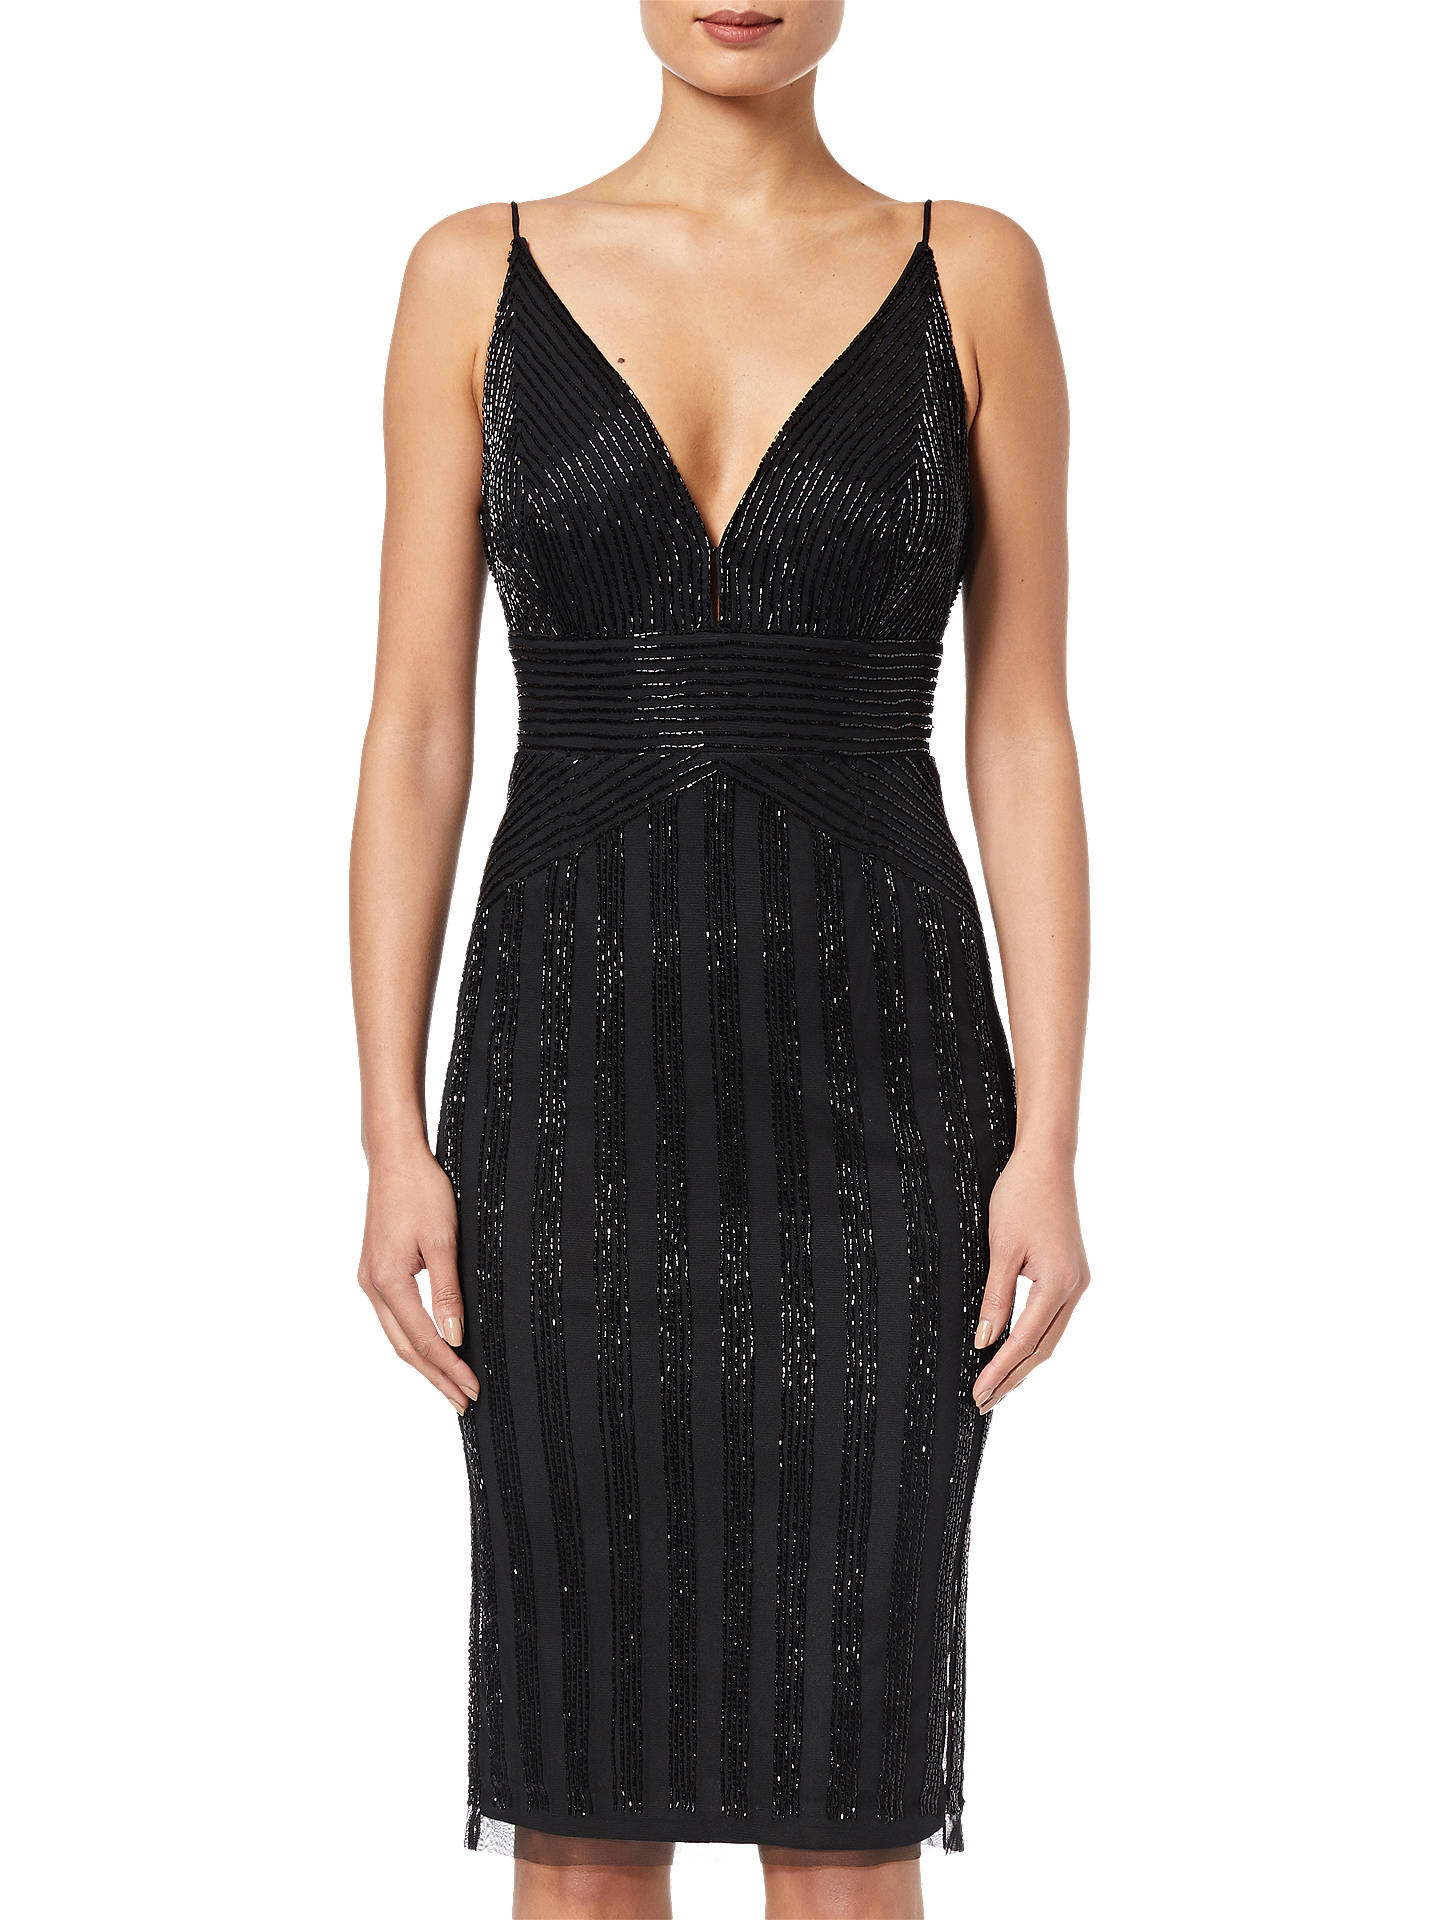 BuyAdrianna Papell Beaded Short Dress, Black, 14 Online at johnlewis.com